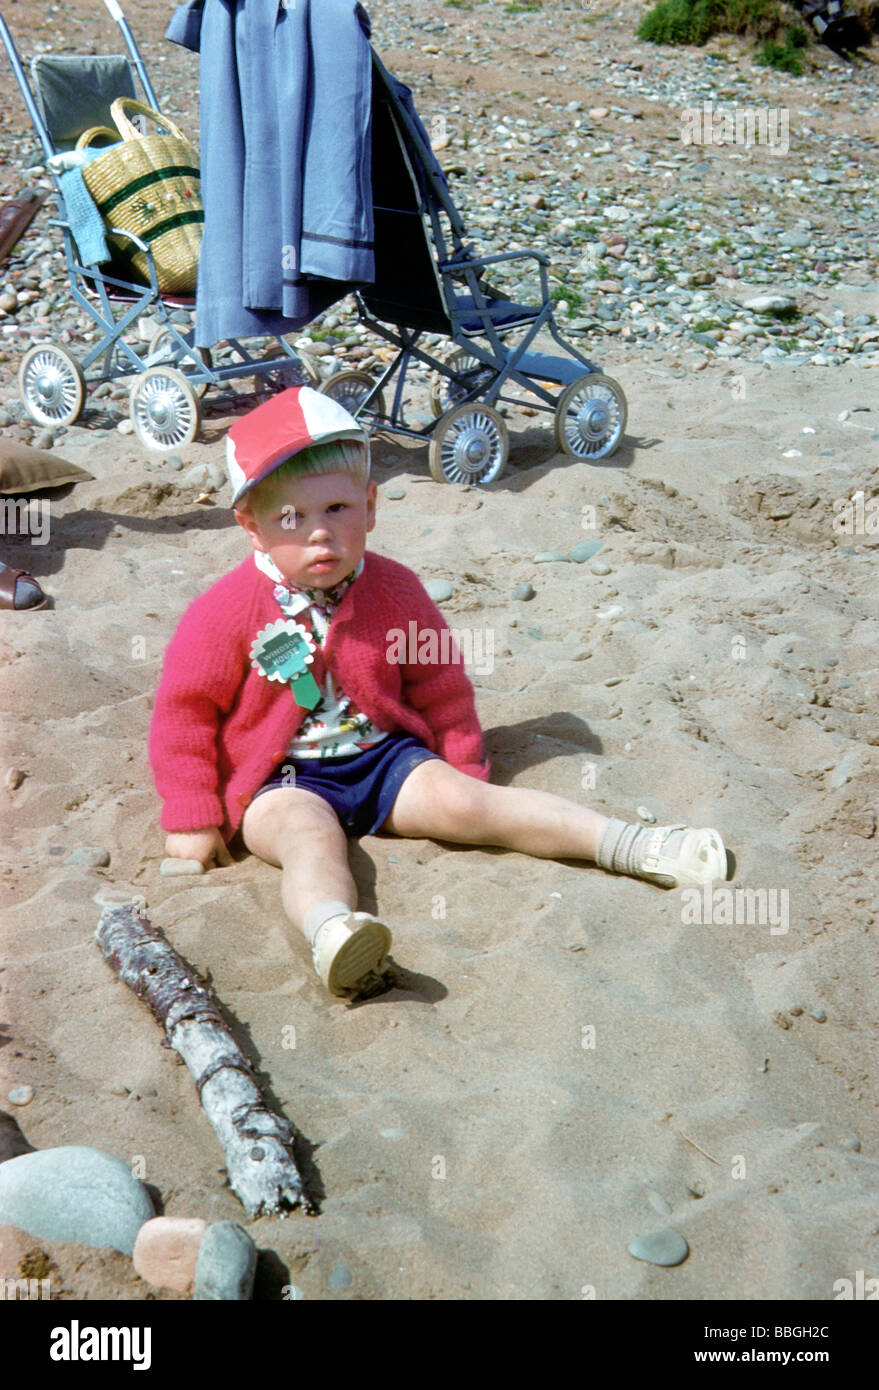 Colin Walton when a toddler on the beach at Butlins, Pwllheli, Wales. - Stock Image